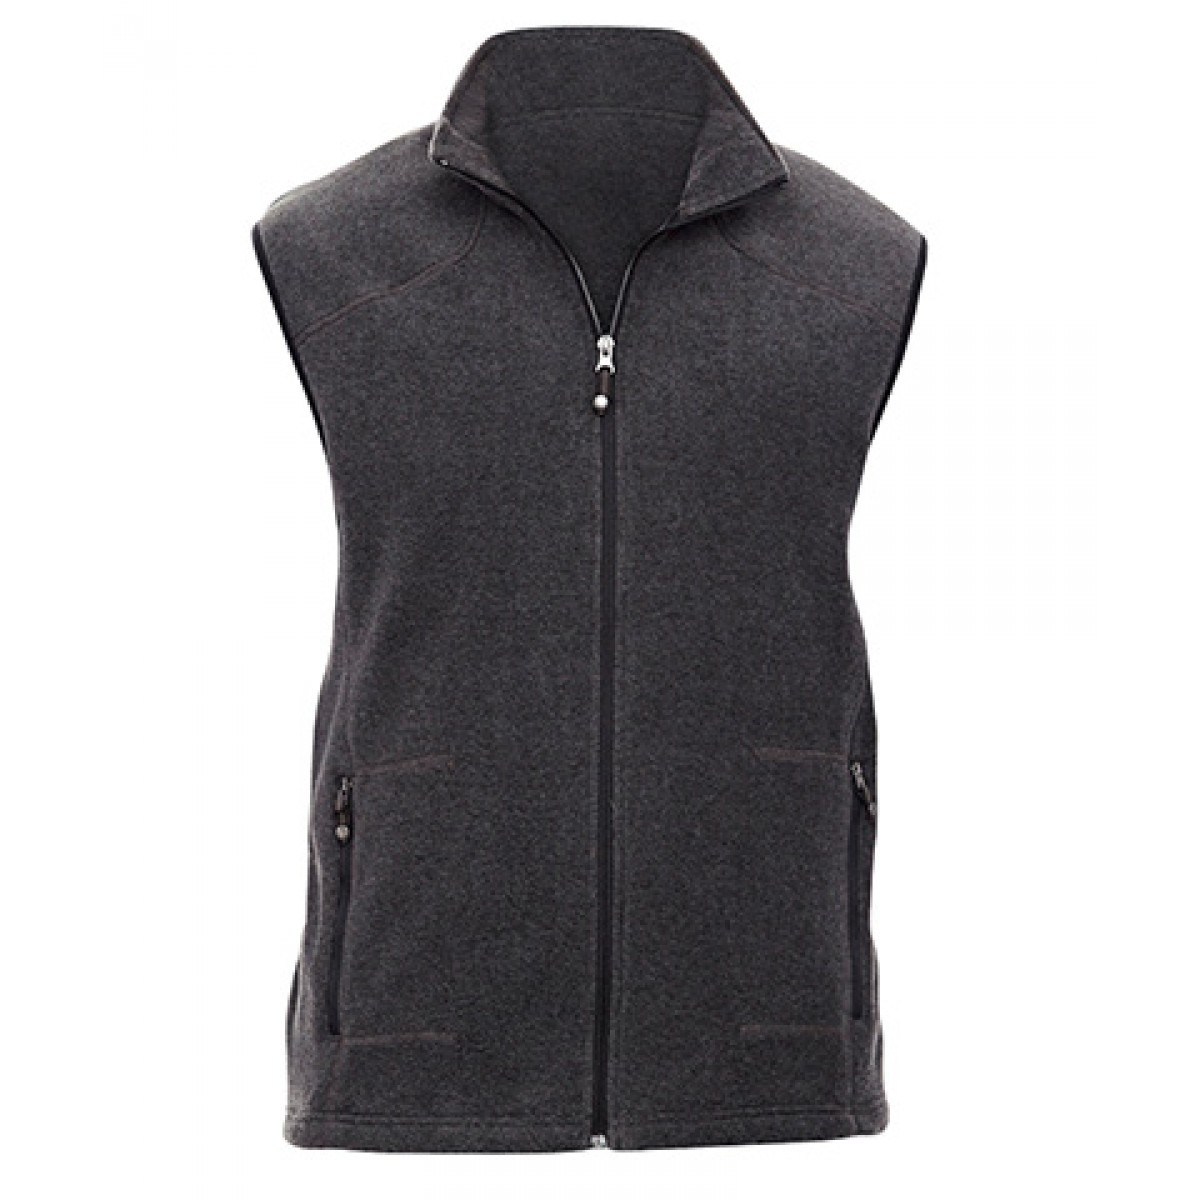 Men's Voyage Fleece Vest-Gray -S